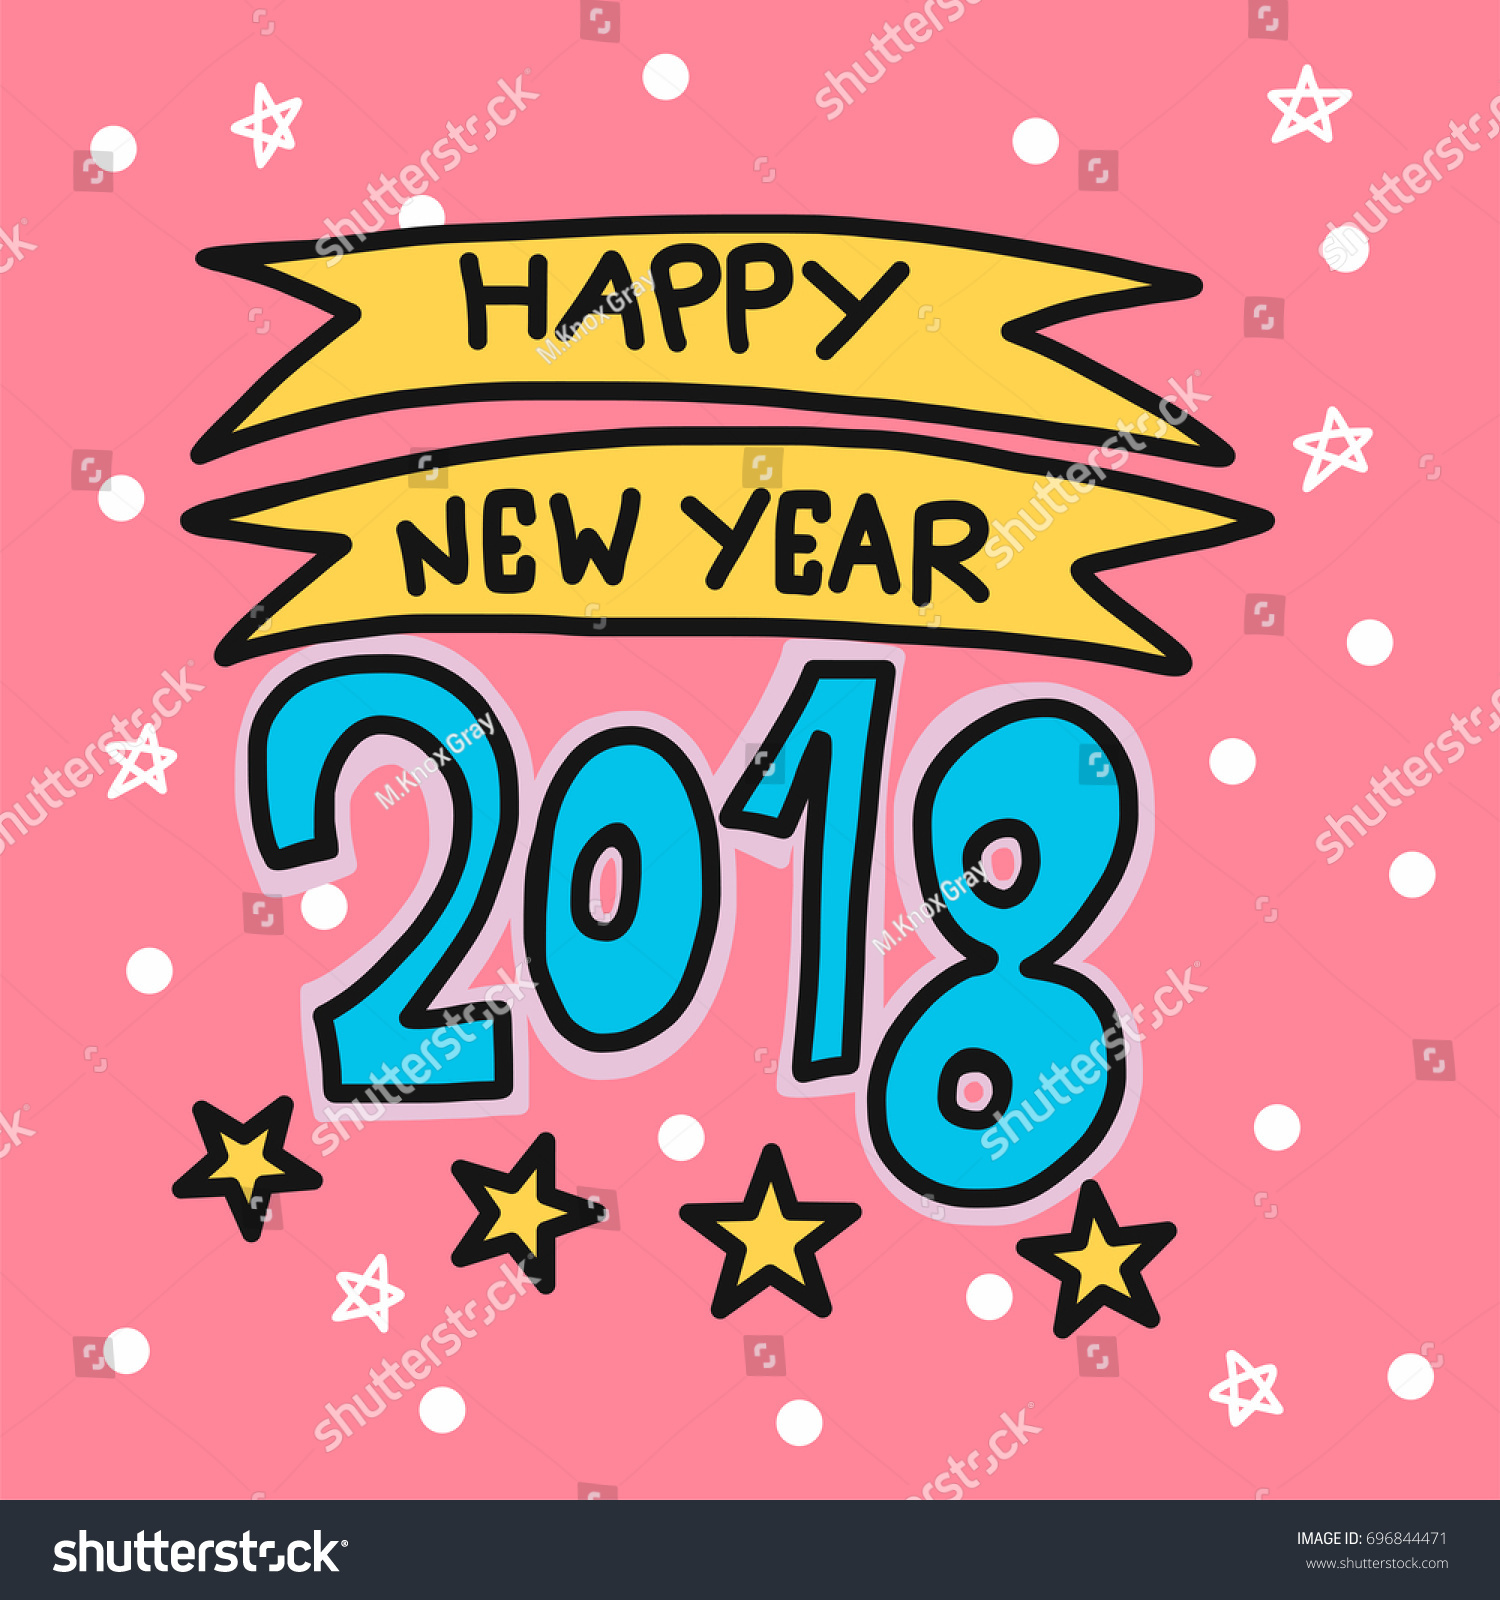 happy new year 2018 cartoon vector illustration